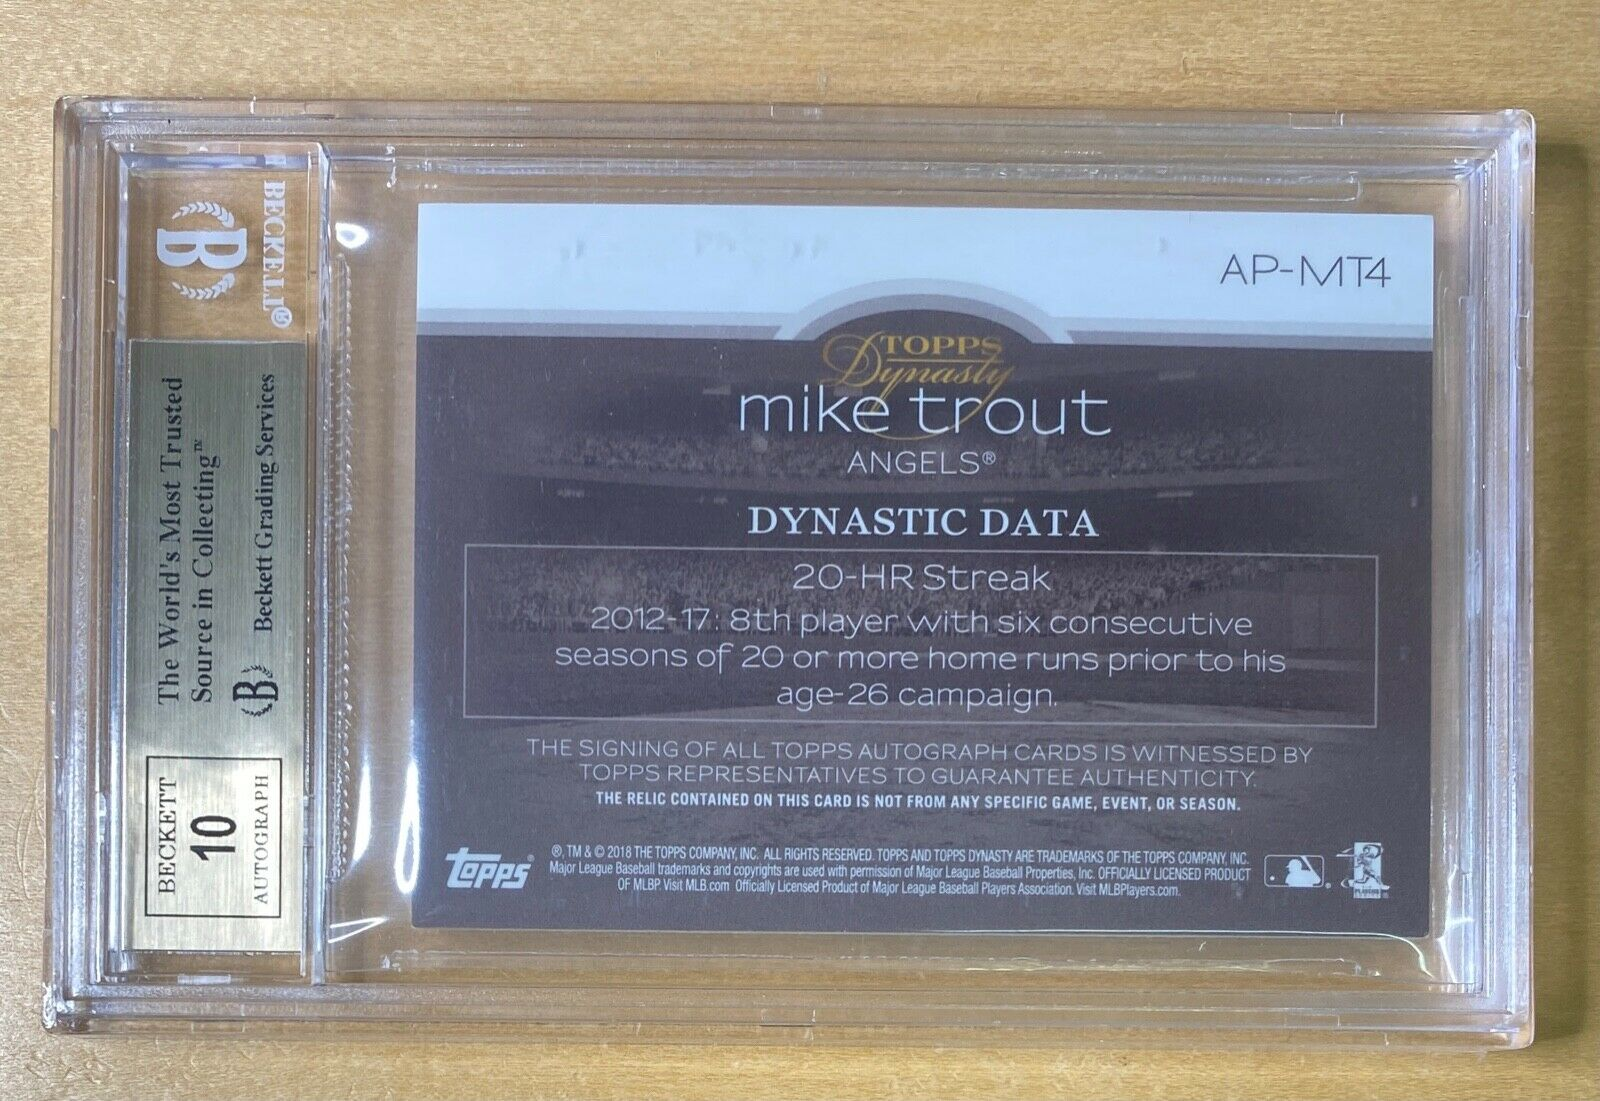 2018 Topps Dynasty MIKE TROUT Jersey Logo Patch Auto 1/5 BGS 9.5 Gem Mint Angels - Image 2